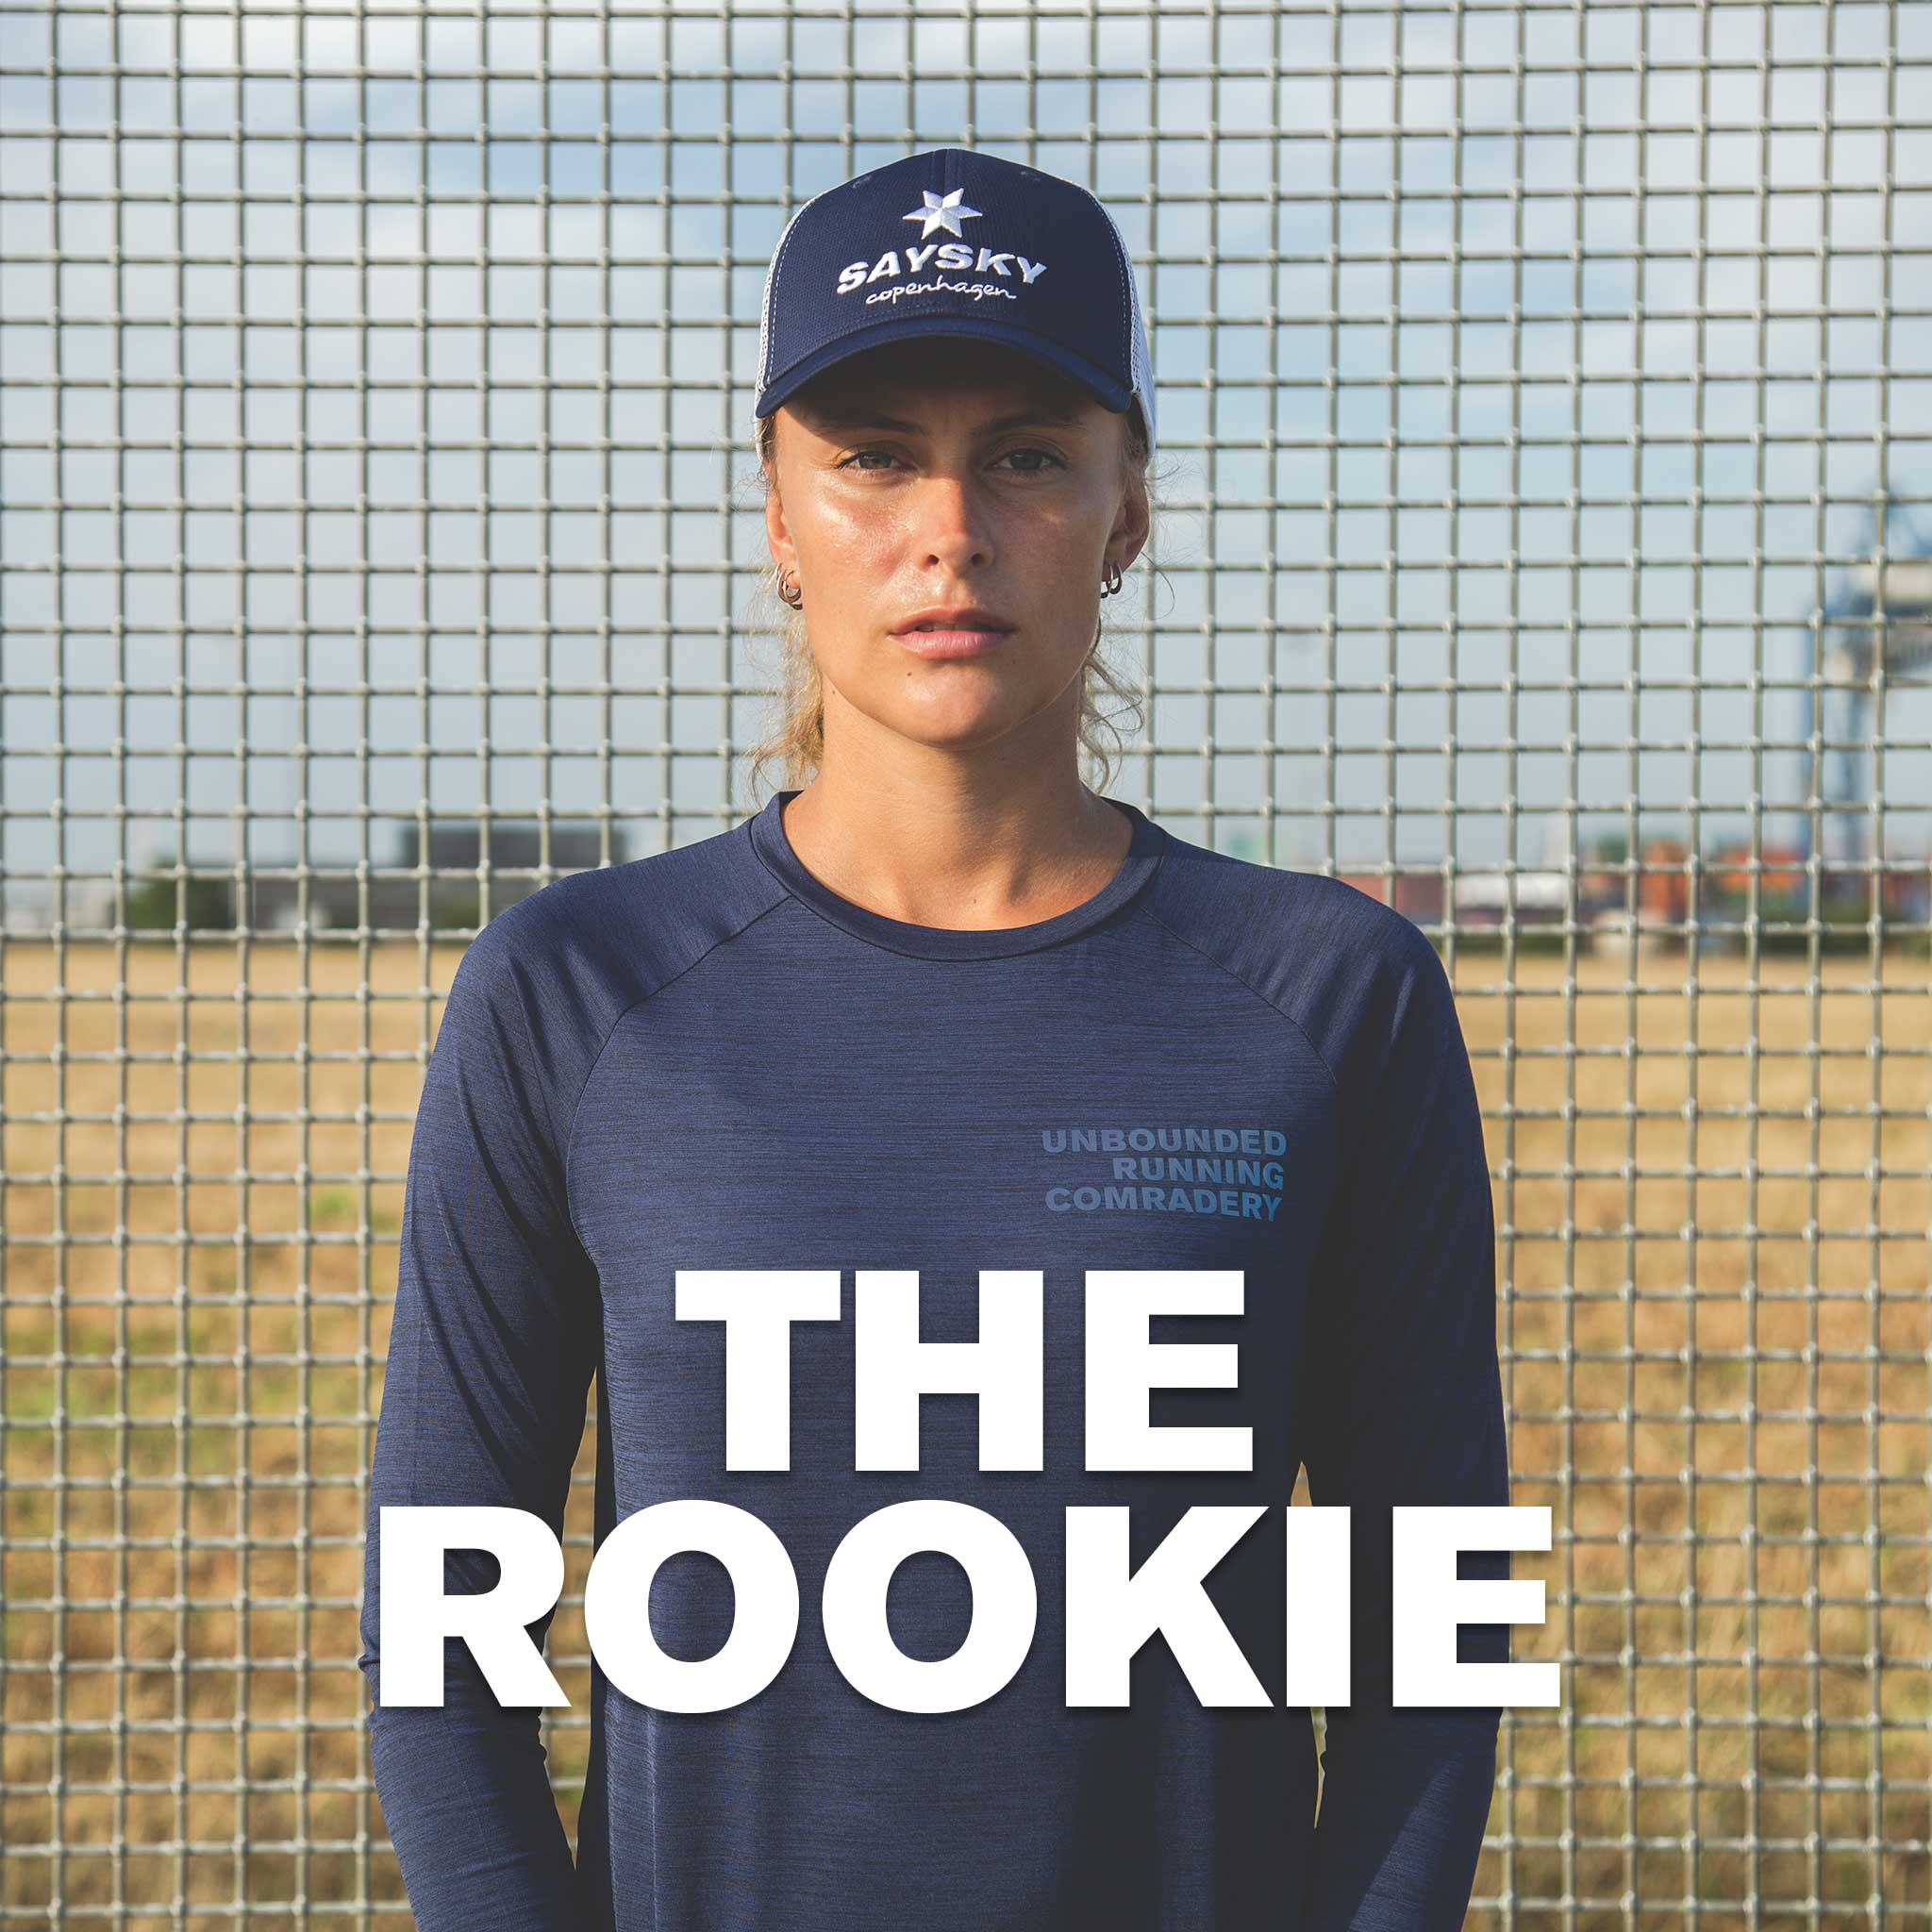 The SAYSKY Rookie